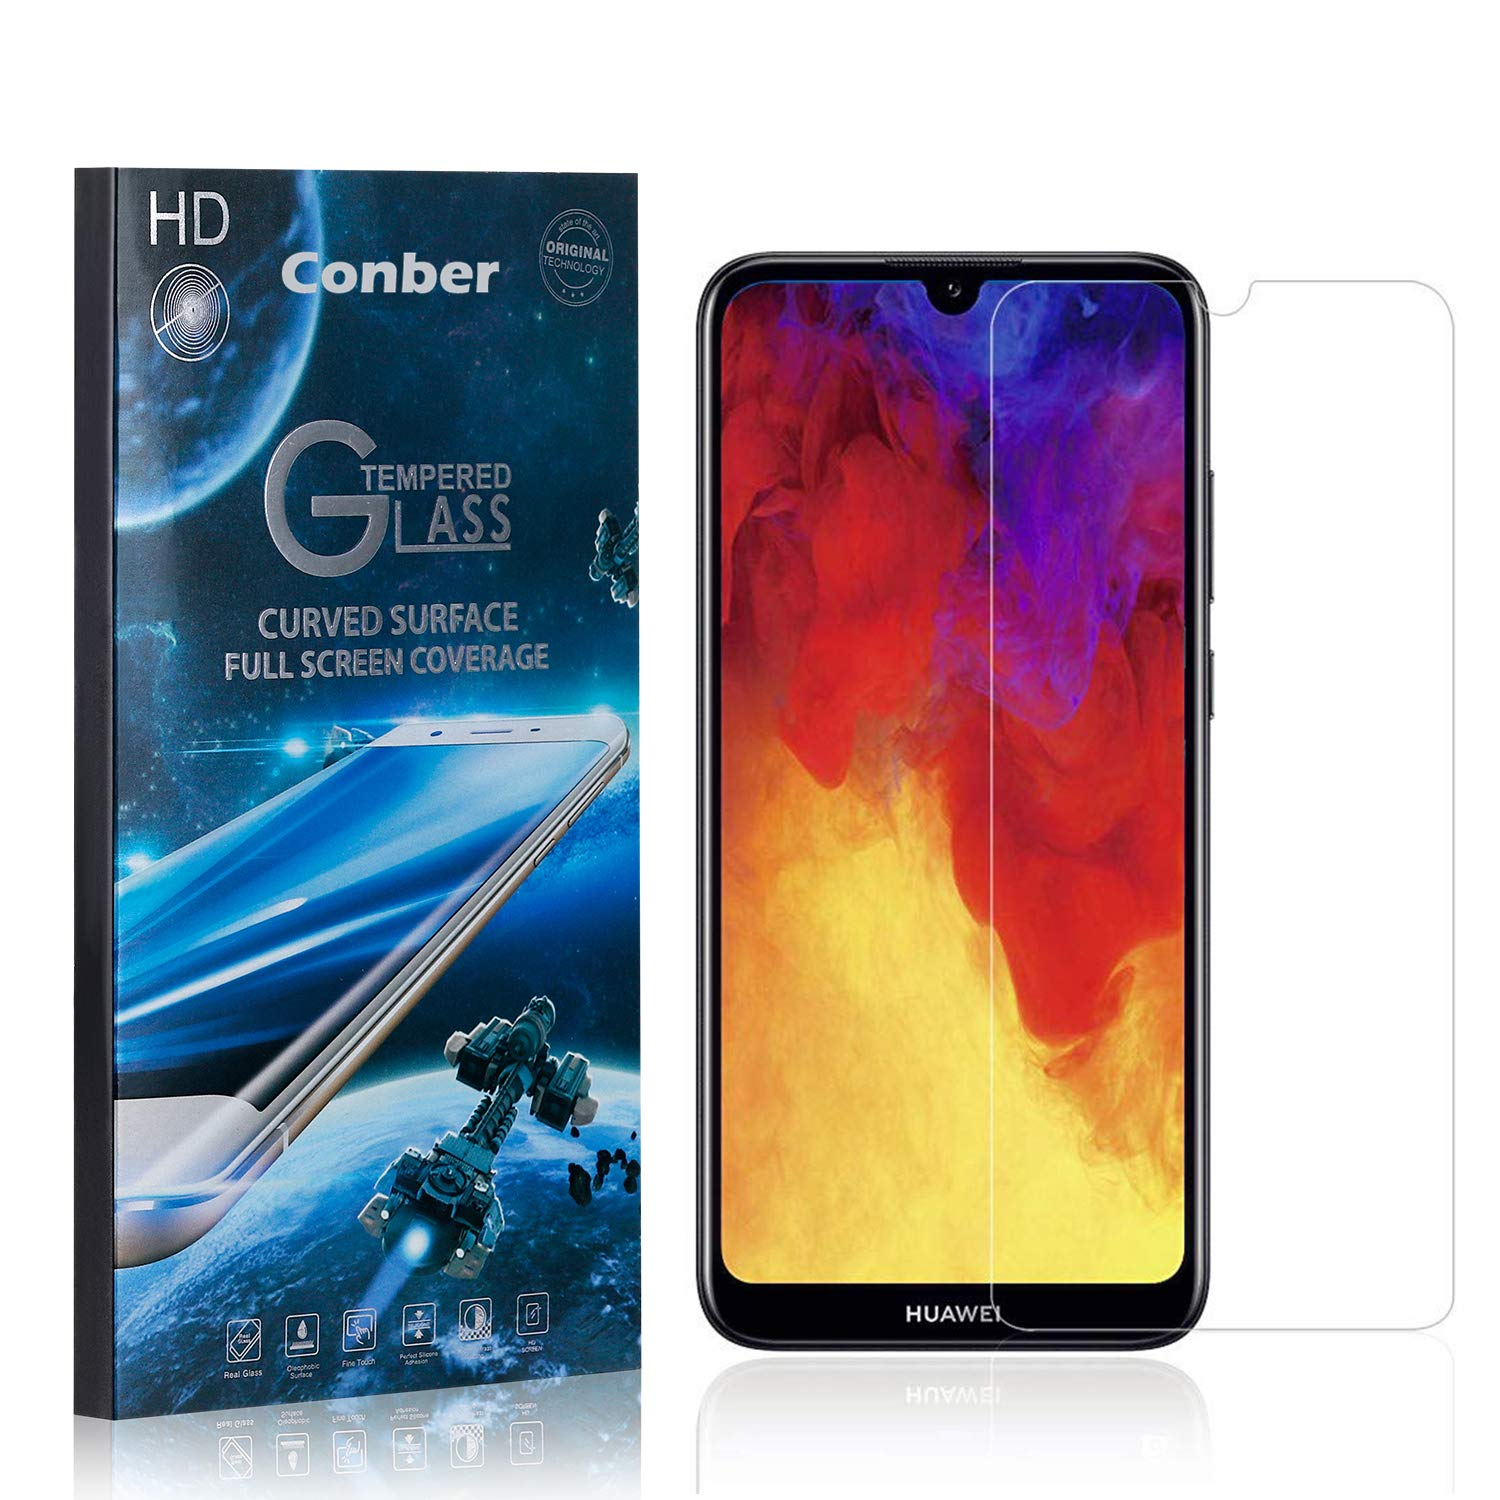 Conber 2021 autumn and winter new 1 Pack Screen Protector 2019 Y6 Scratch-Re wholesale Huawei for